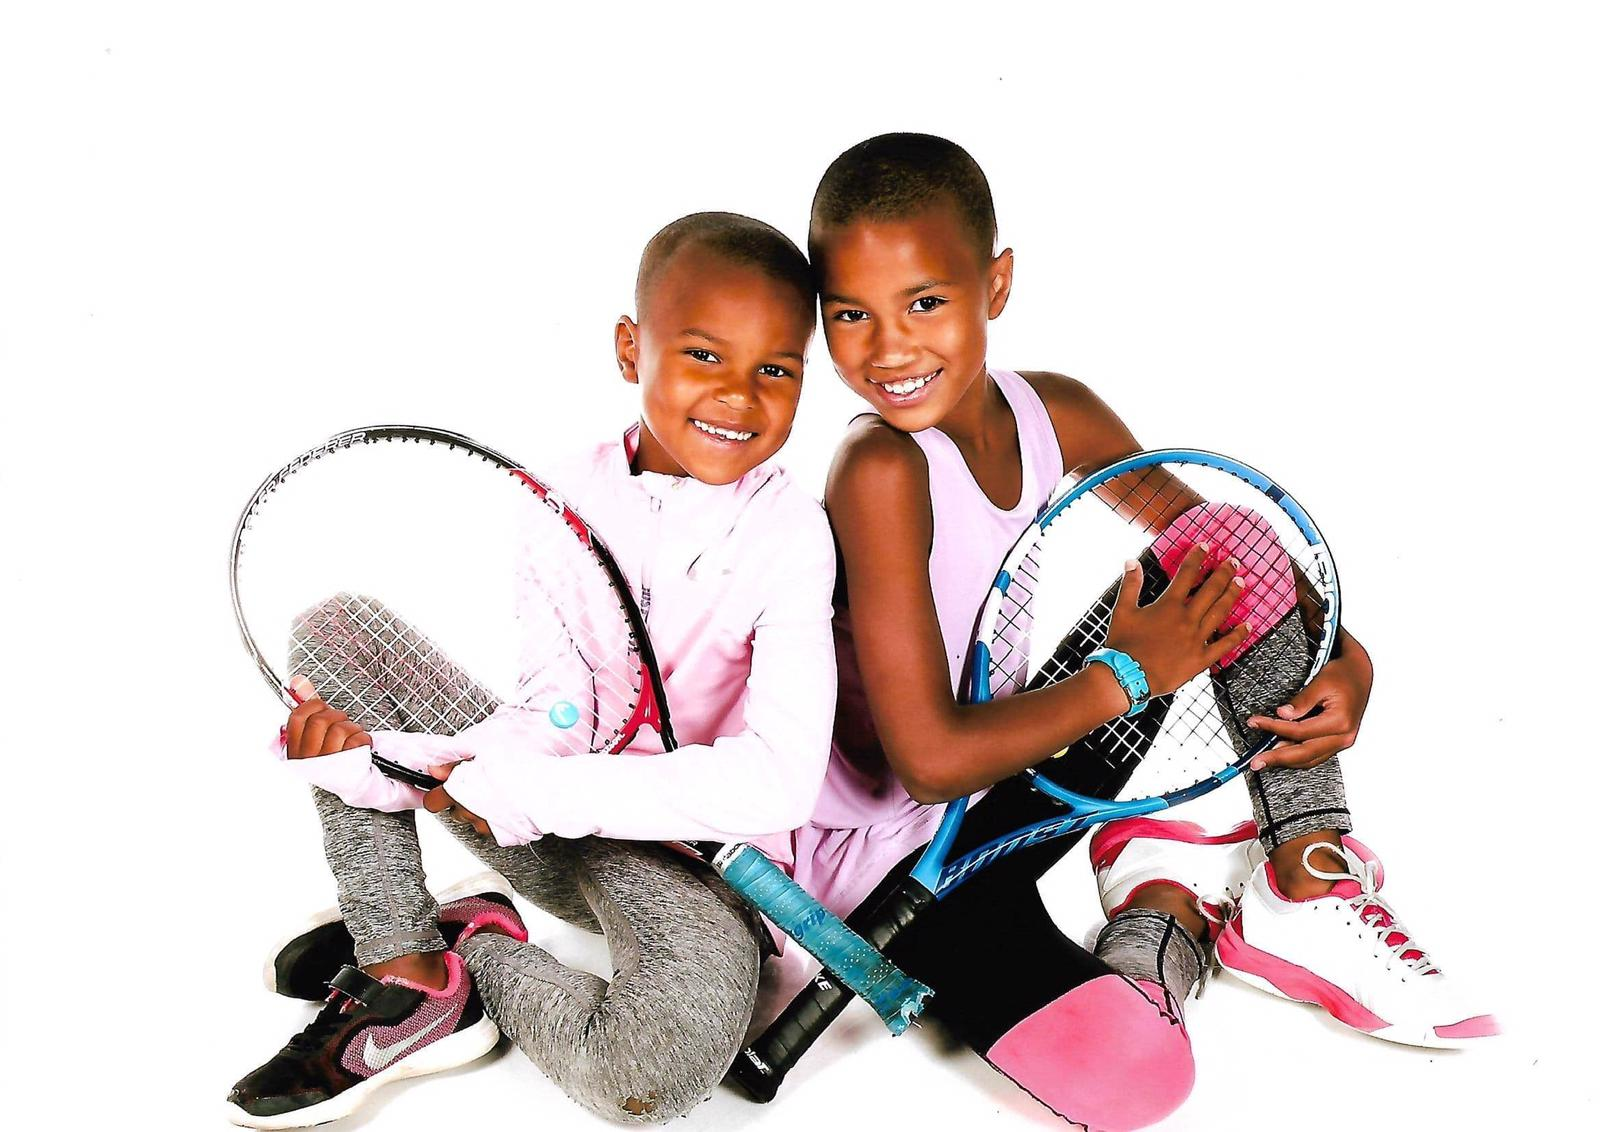 Meet the Dolci sisters: Budding Swedish tennis stars with Kenyan roots